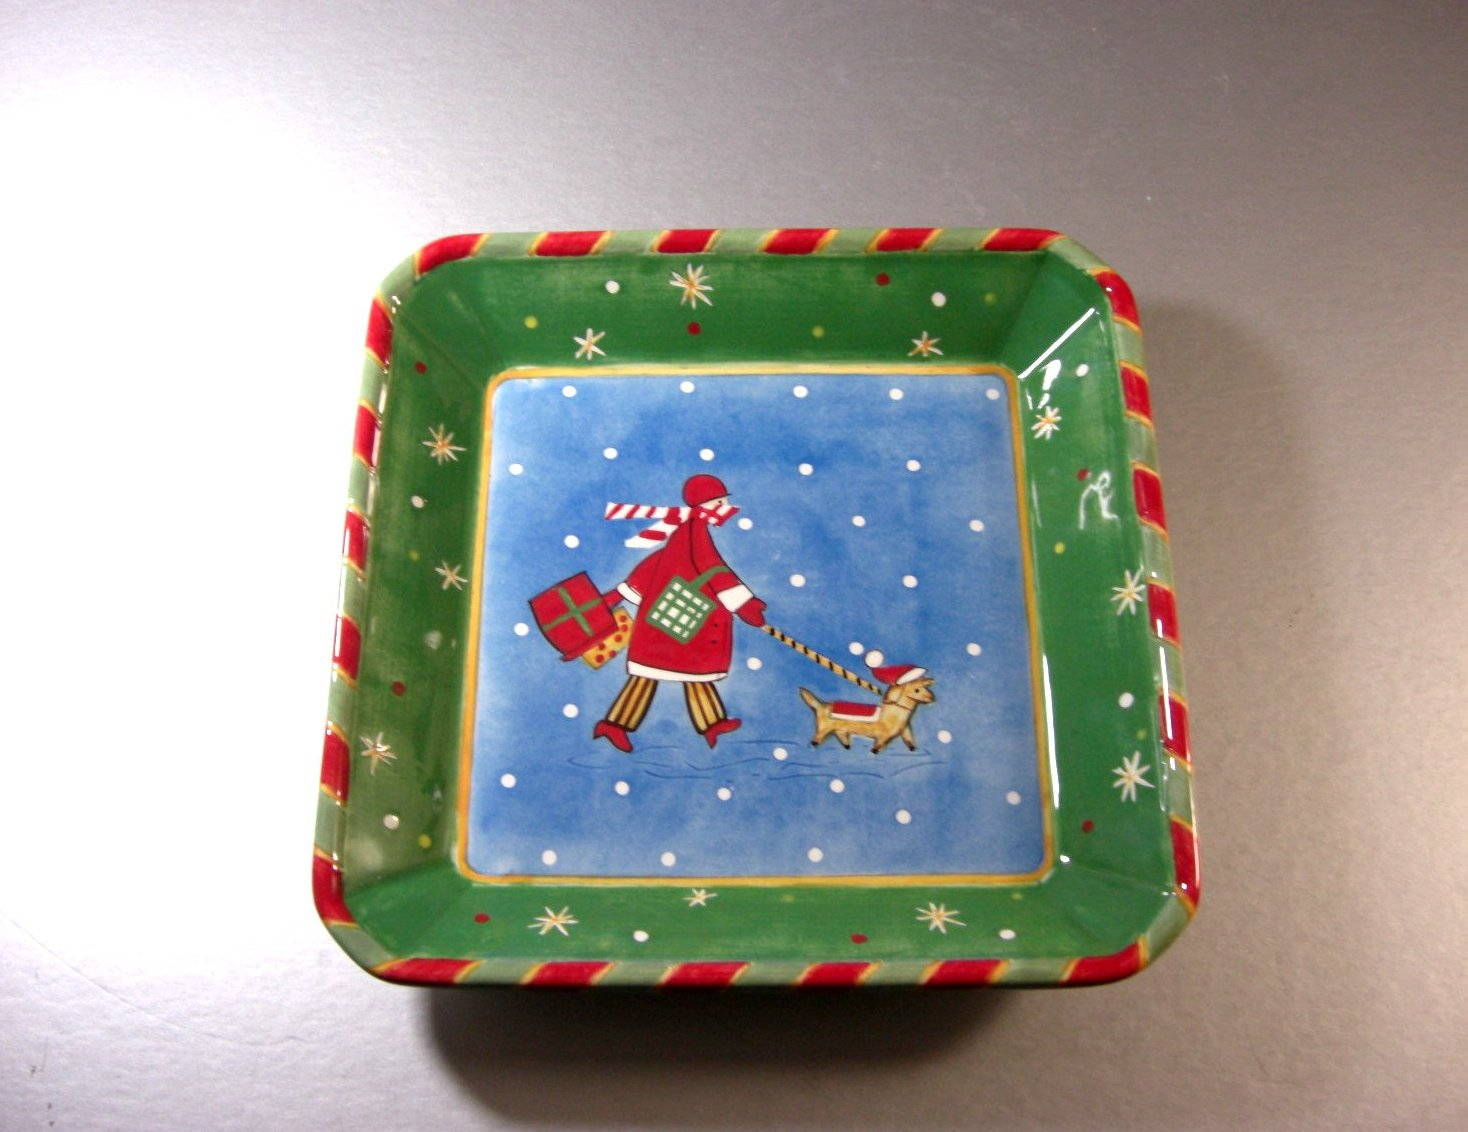 Christmas Time In The City Cookie Candy Dish Tray By Sango Designed By Chuck Fis